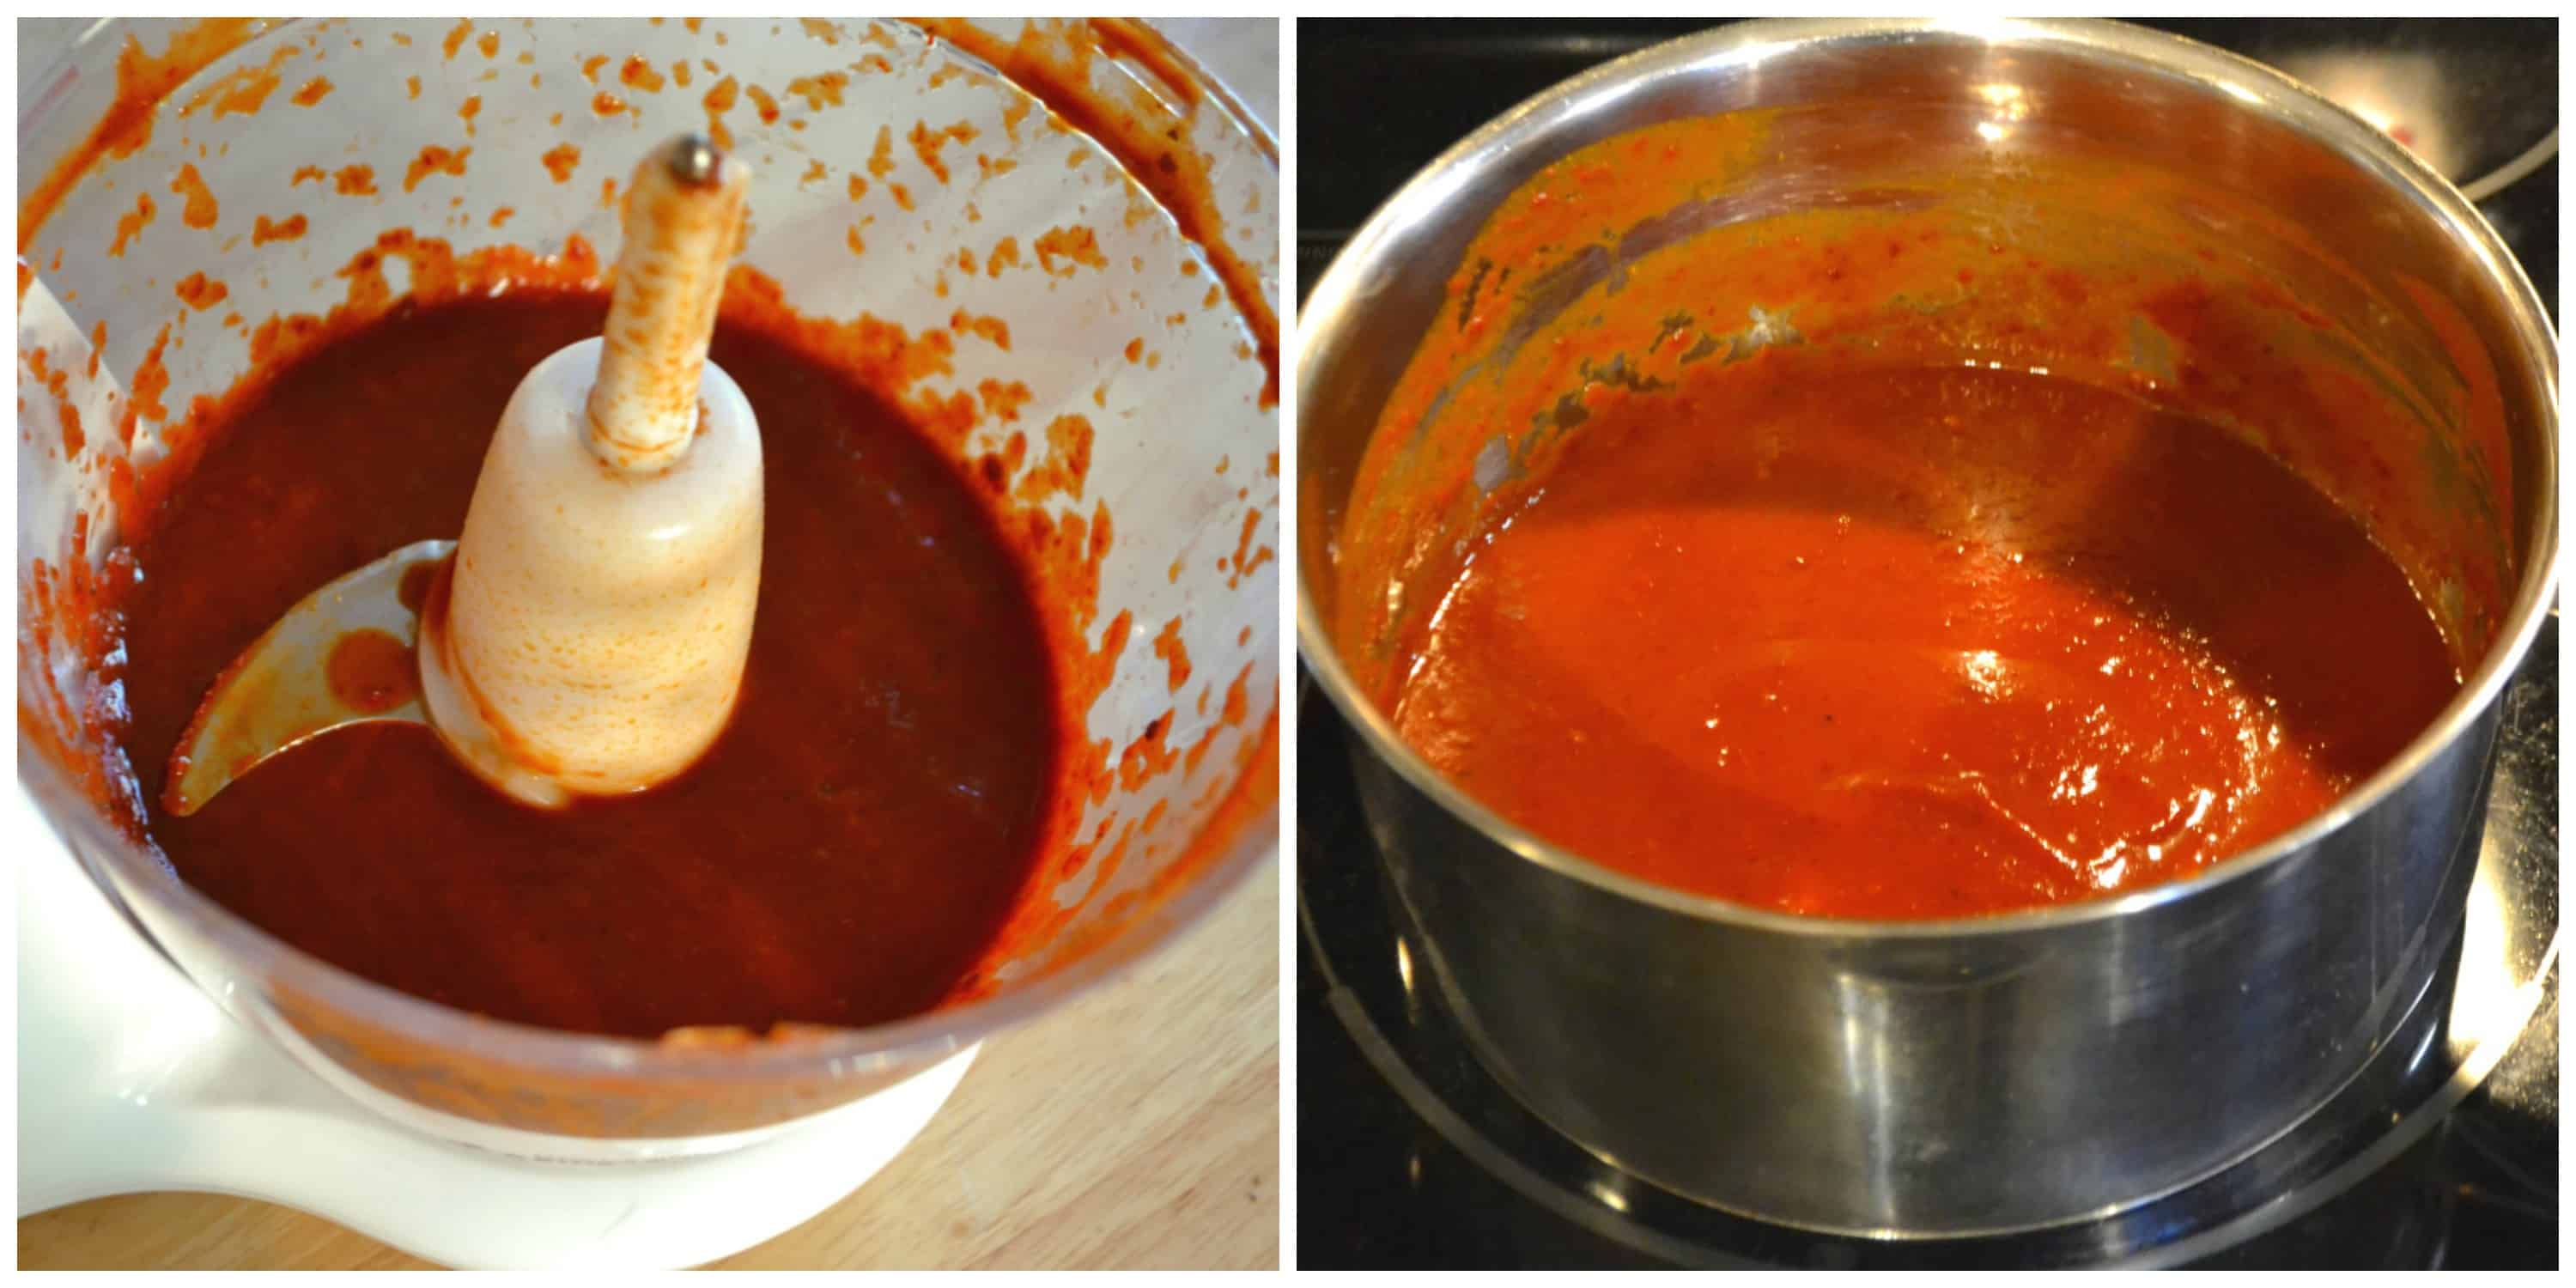 Easy Peasy Homemade Chipotle Hot Sauce | Made With Canned Chipotle Peppers | www.craftycookingmama.com